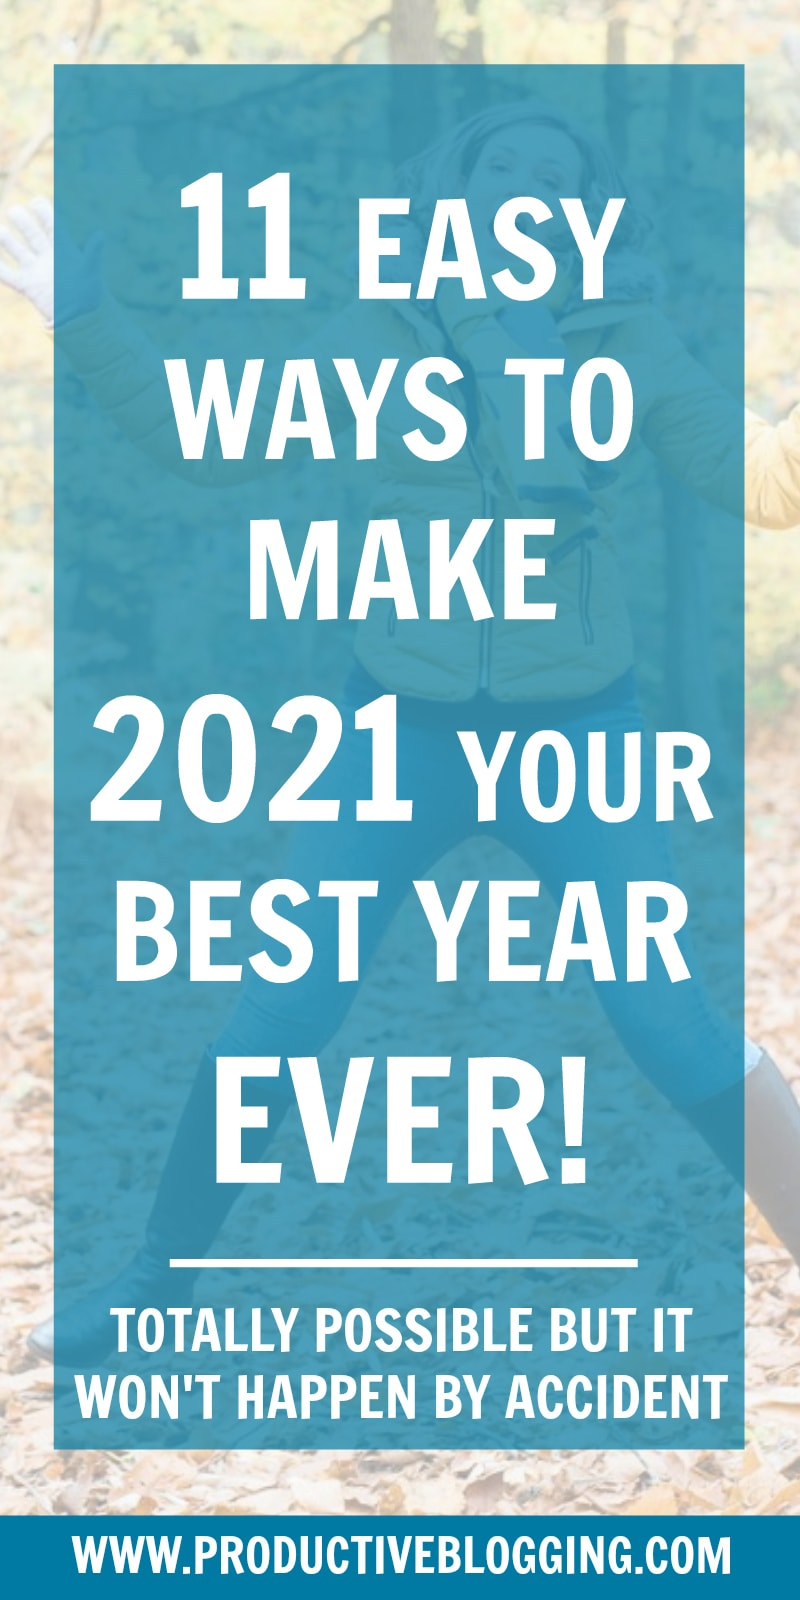 Hands up who wants to have an AWESOME 2021? You, me and the rest of the world, right? Time to face facts – that is not going to happen by accident. Having an amazing 2021 is totally possible, but it will take focus and effort. Here are 11 easy ways to make 2021 your best year EVER! #2021bestyearever #bestyearever2021 #bestyearever #2021goalsetting #goalsetting2021 #blogging #bloggers #blog #blogging2021 #2021blogging #bloggingtips #productivity #productivitytips #productiveblogging